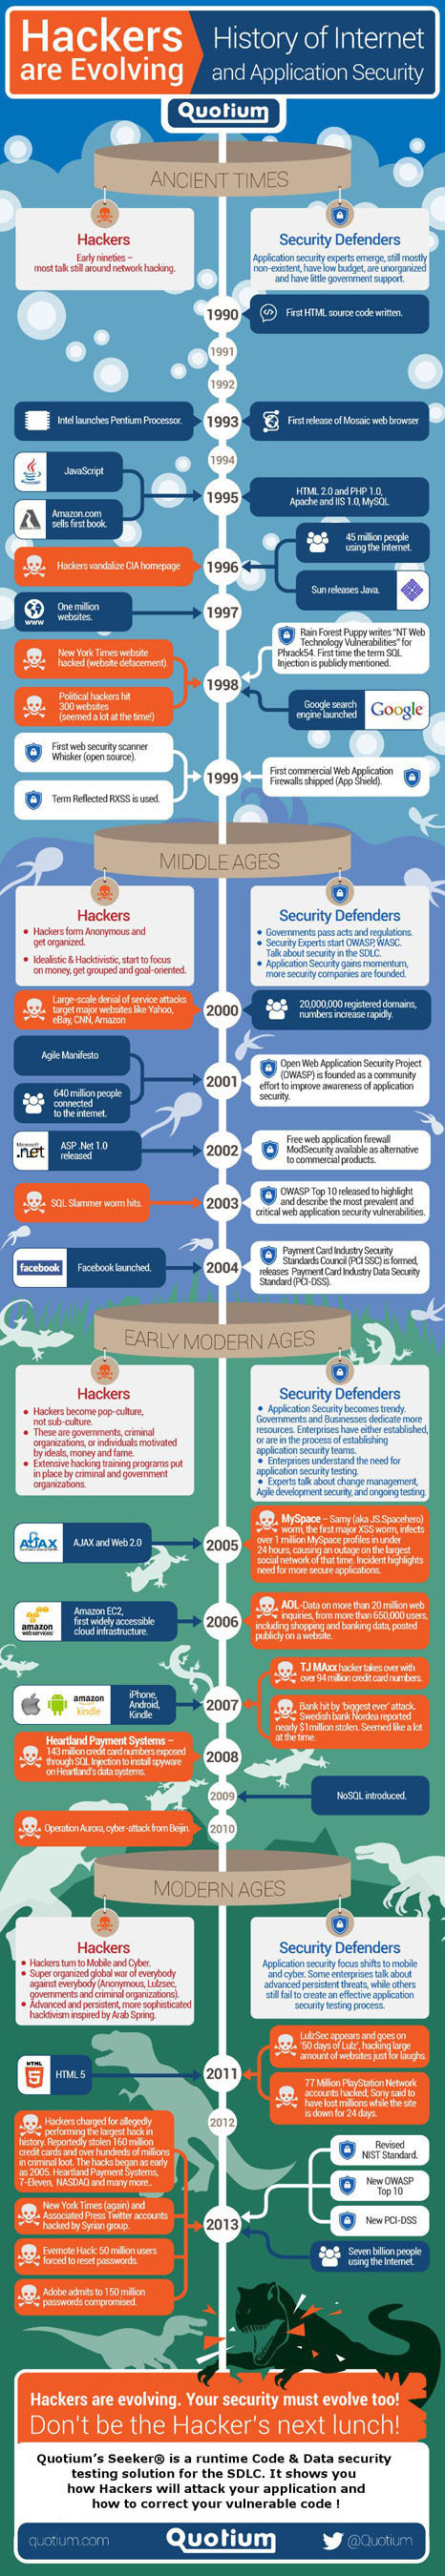 History of application security.  (PRNewsFoto/Quotium Technologies)